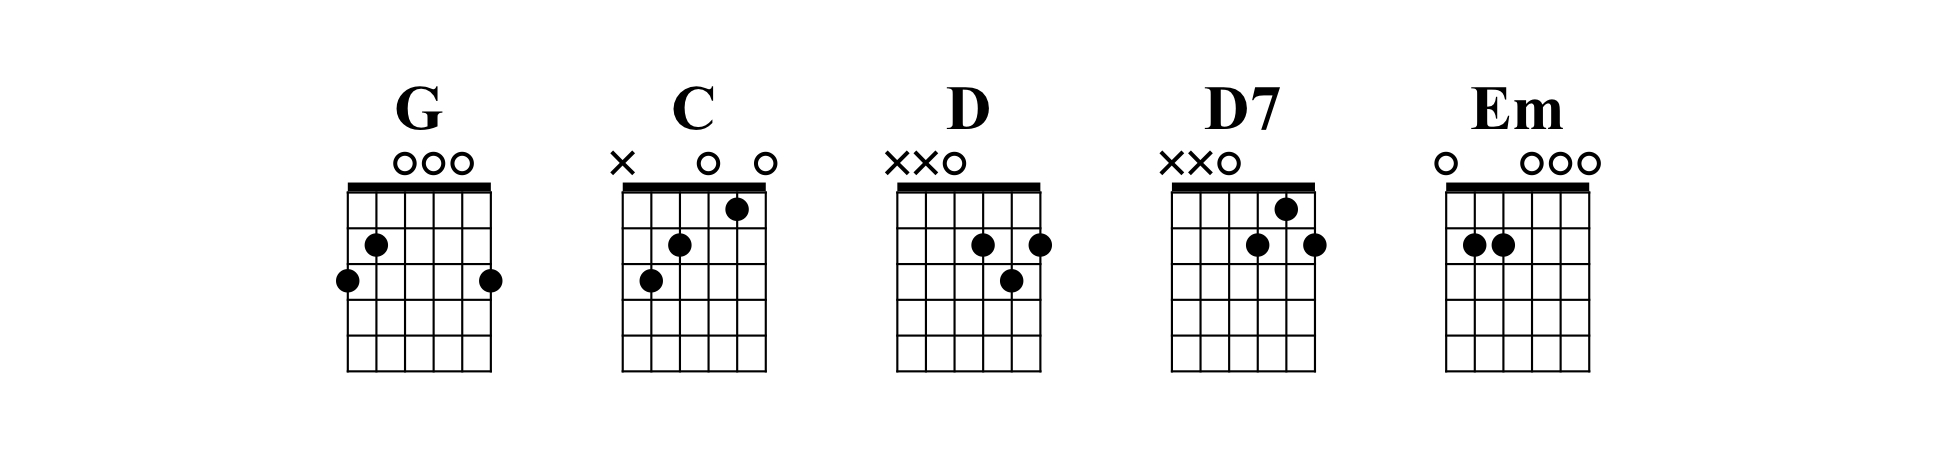 Brown Eyed Girl Chords Top 5 Easy Songs To Learn On Guitar